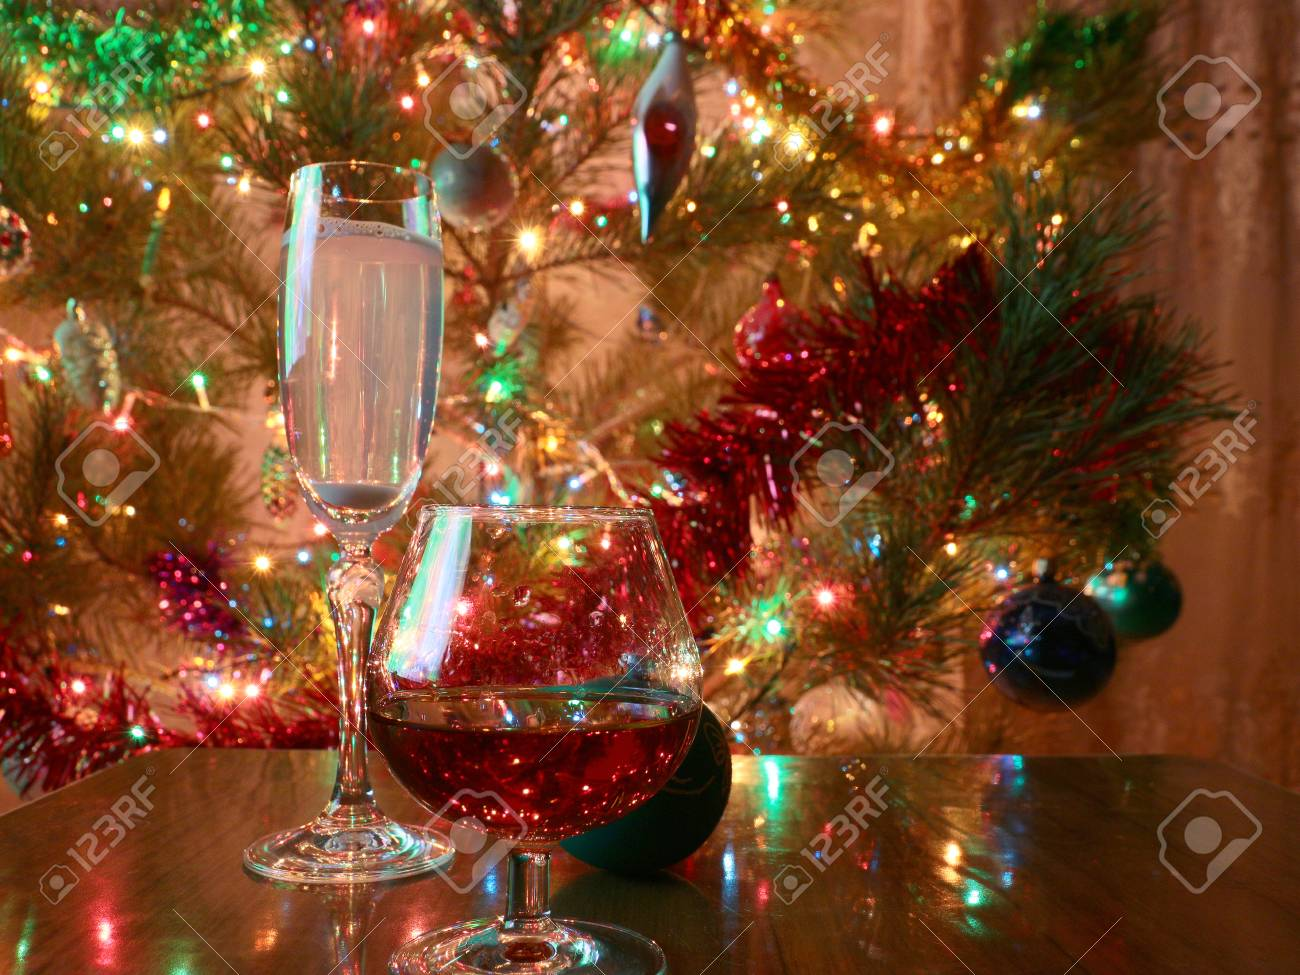 glasses of wine and strong liquor on a background of brightly